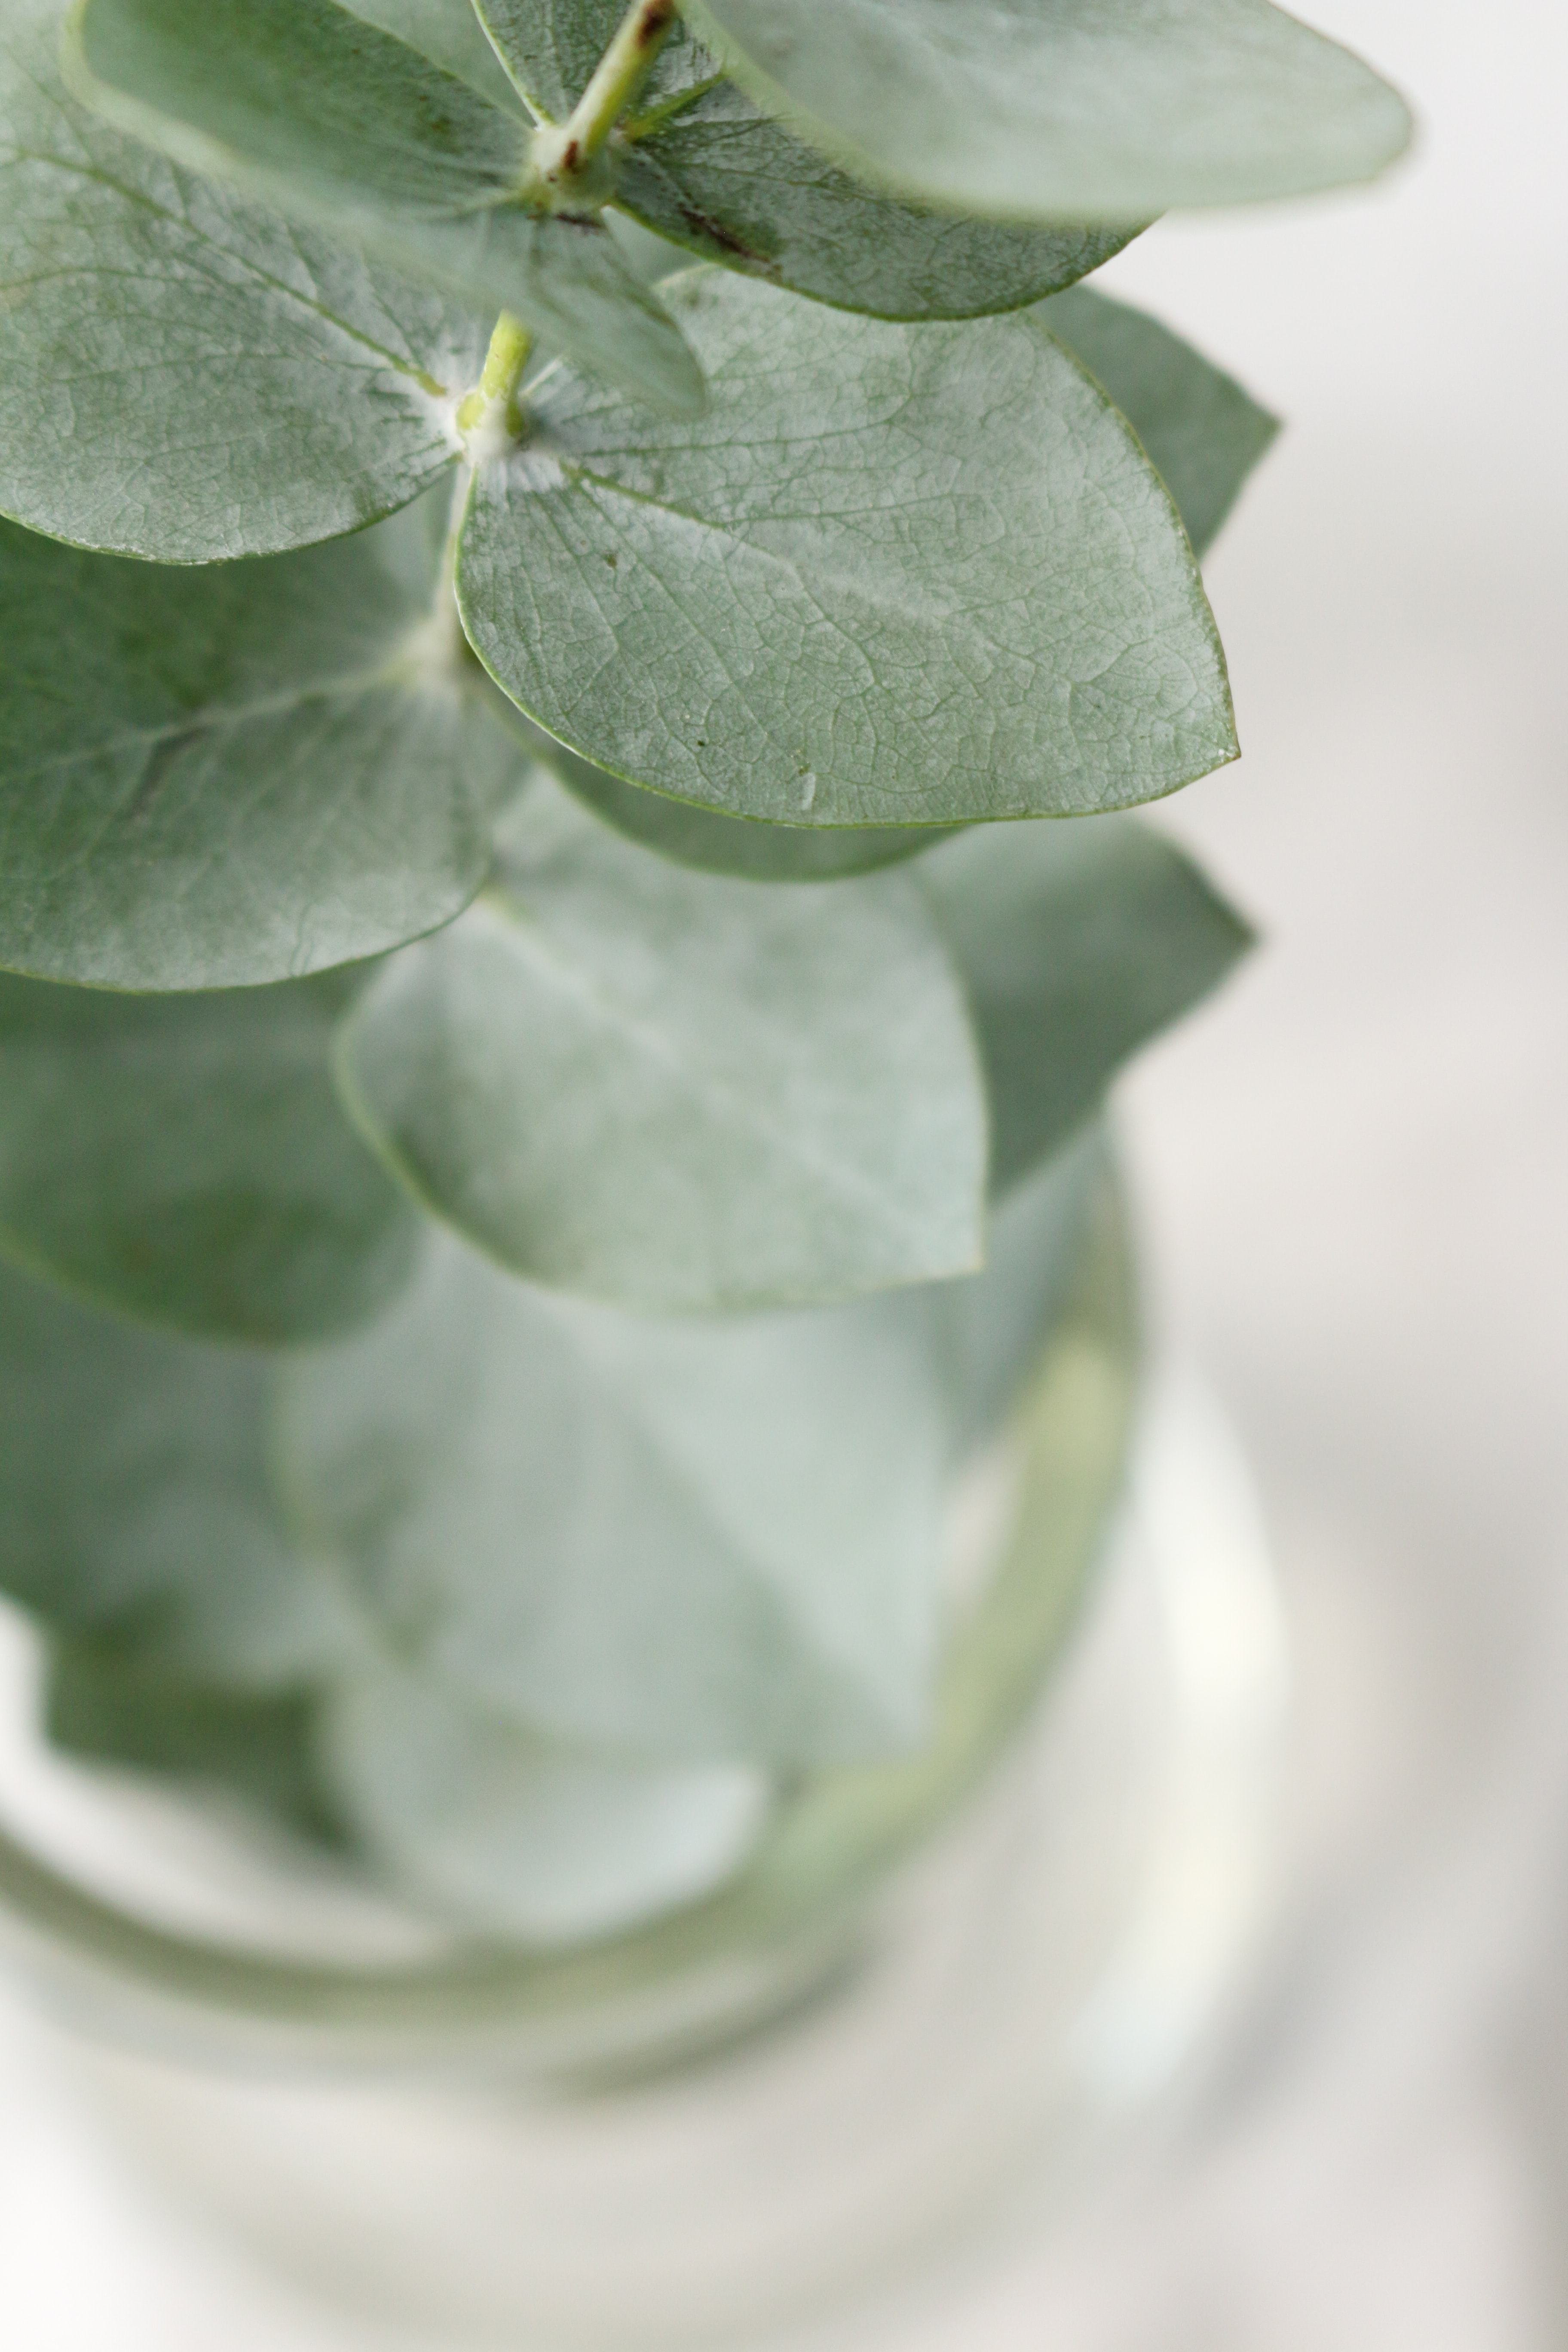 shallow focus photography of oregano plant